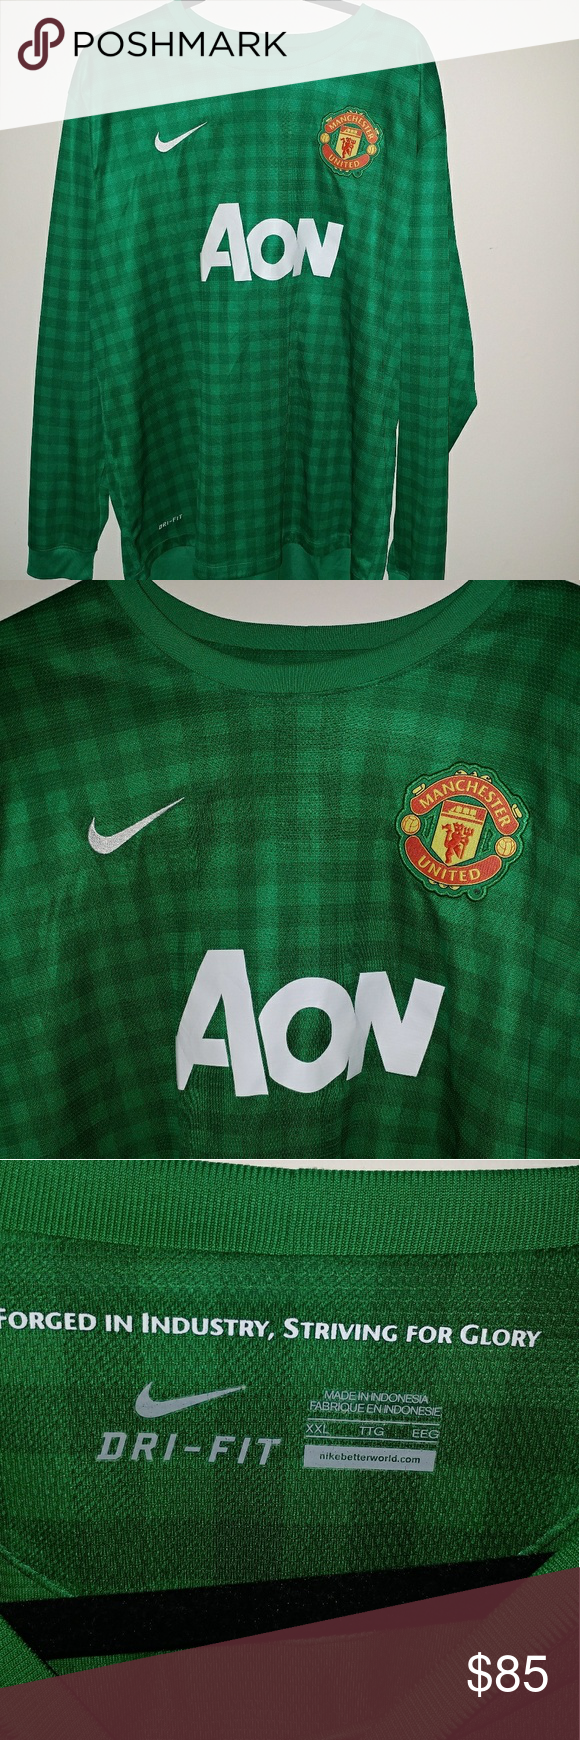 on sale d6375 96244 Green De Gea Green Checkered Nike jersey This Manchester ...